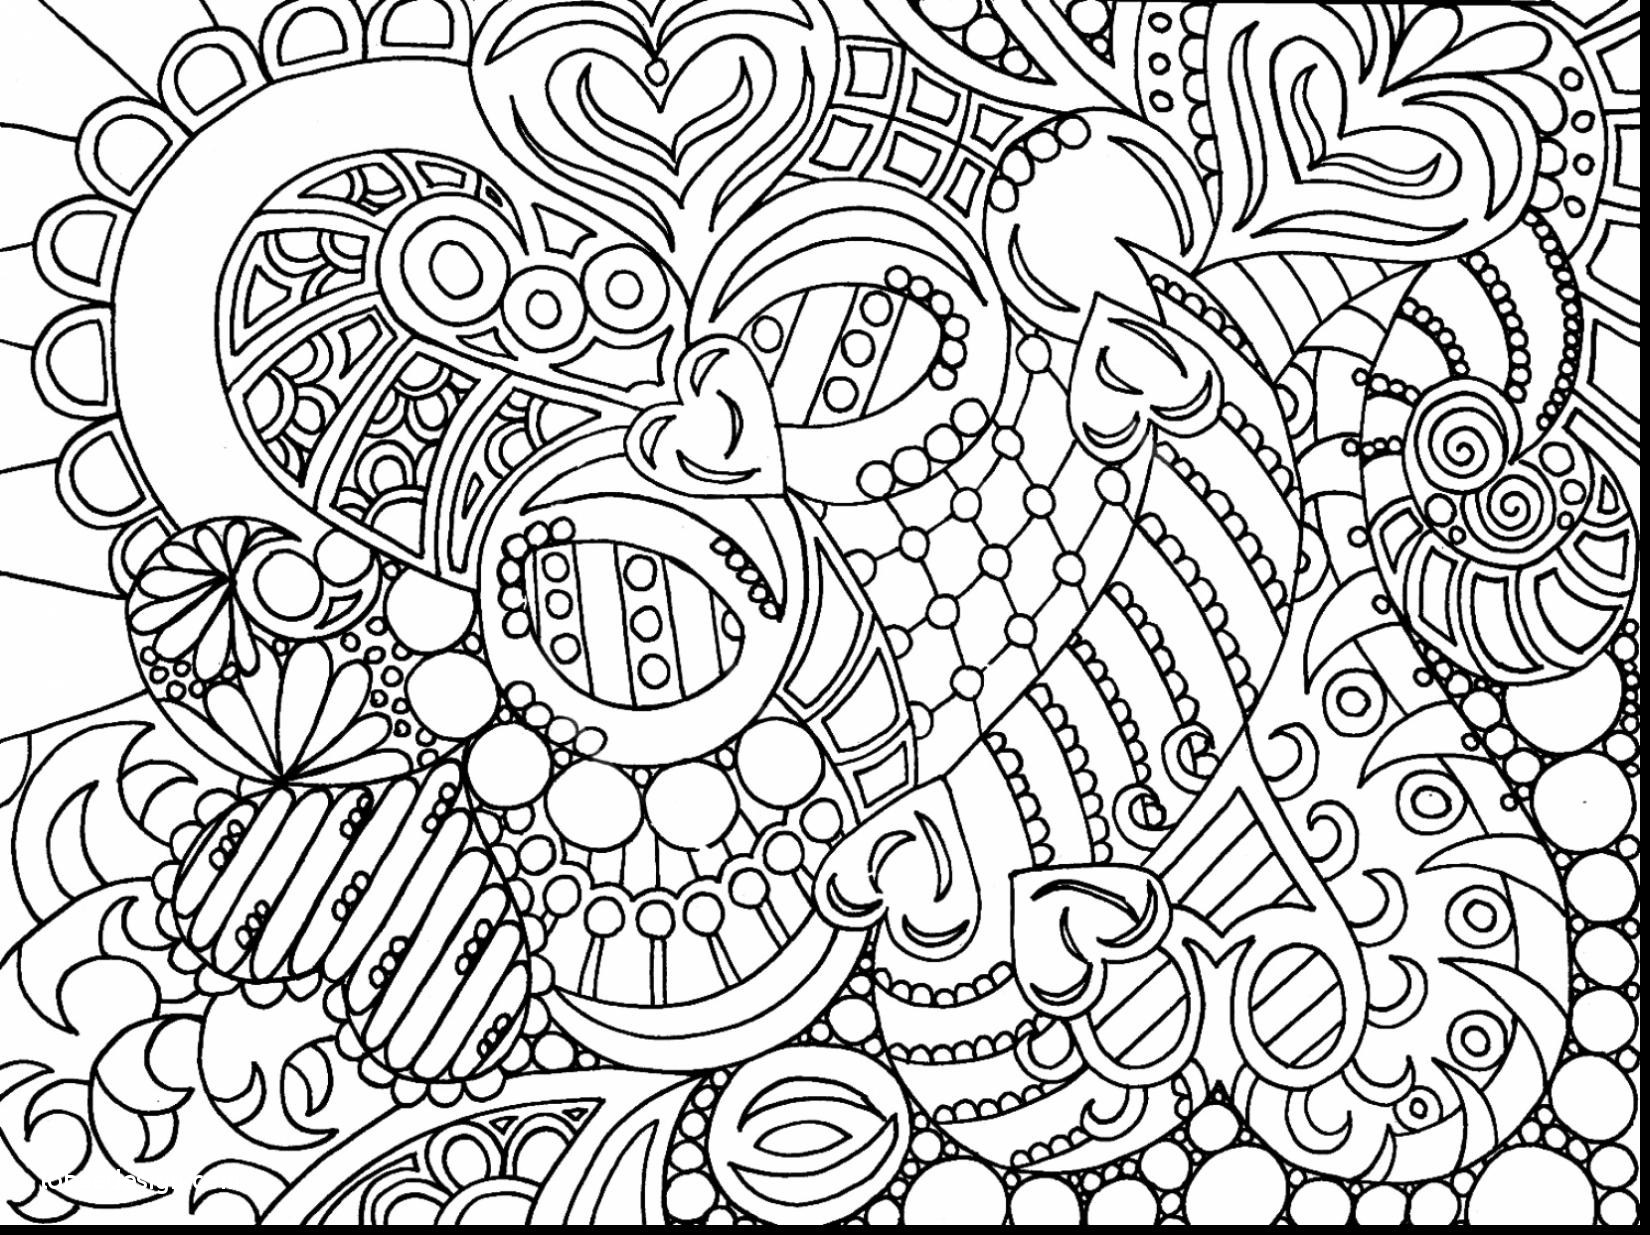 teenage colouring sheets coloring pages teens coloringpages2019 teenage colouring sheets